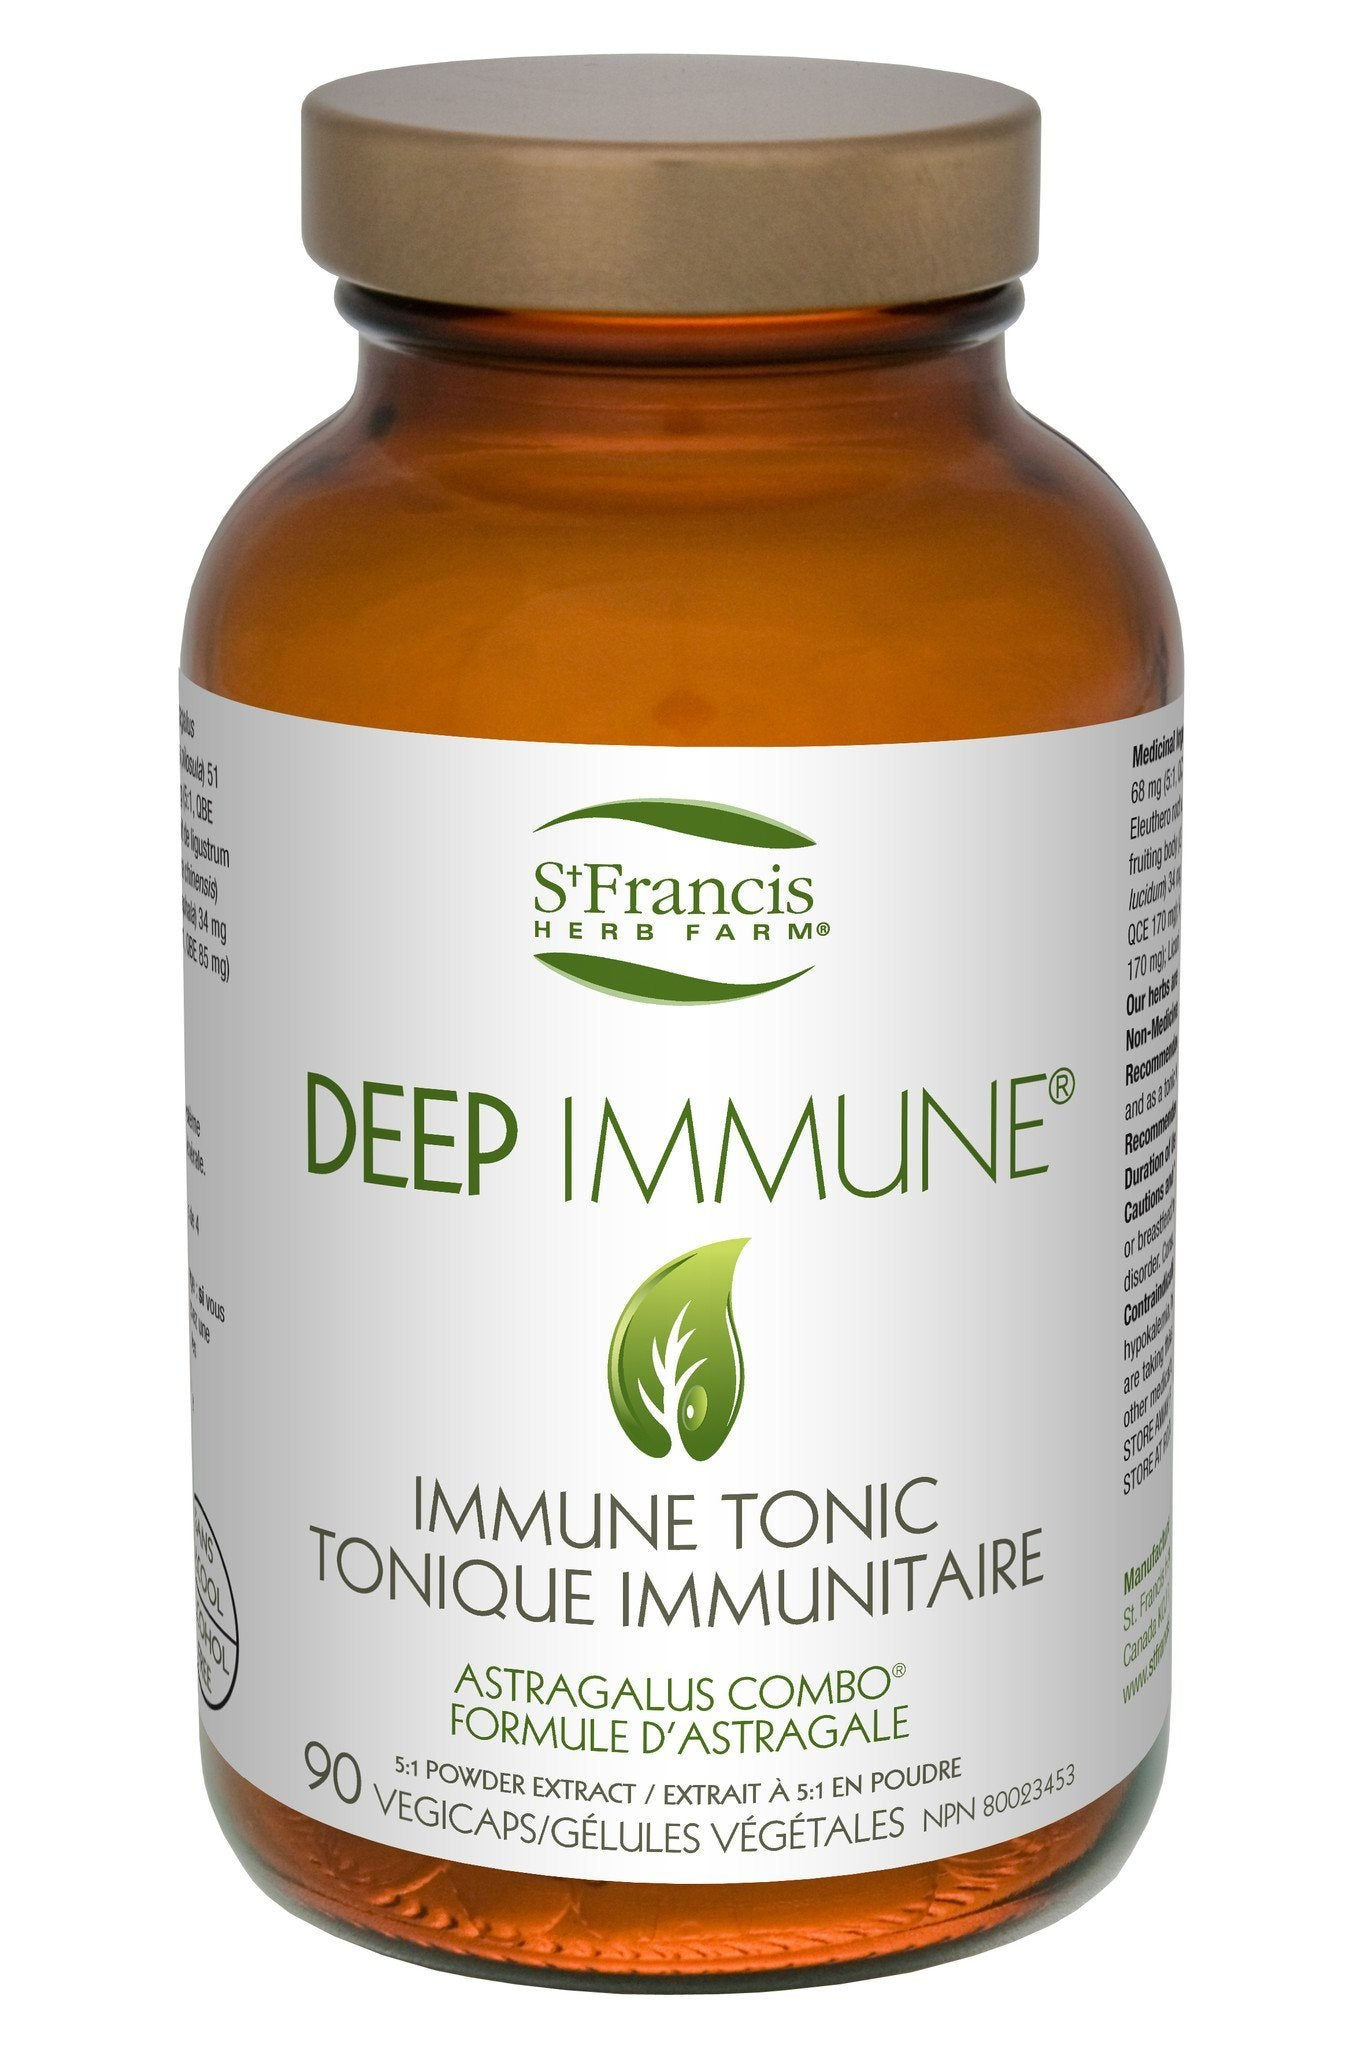 Supplements & Vitamins - St. Francis - Deep Immune, 90 Caps